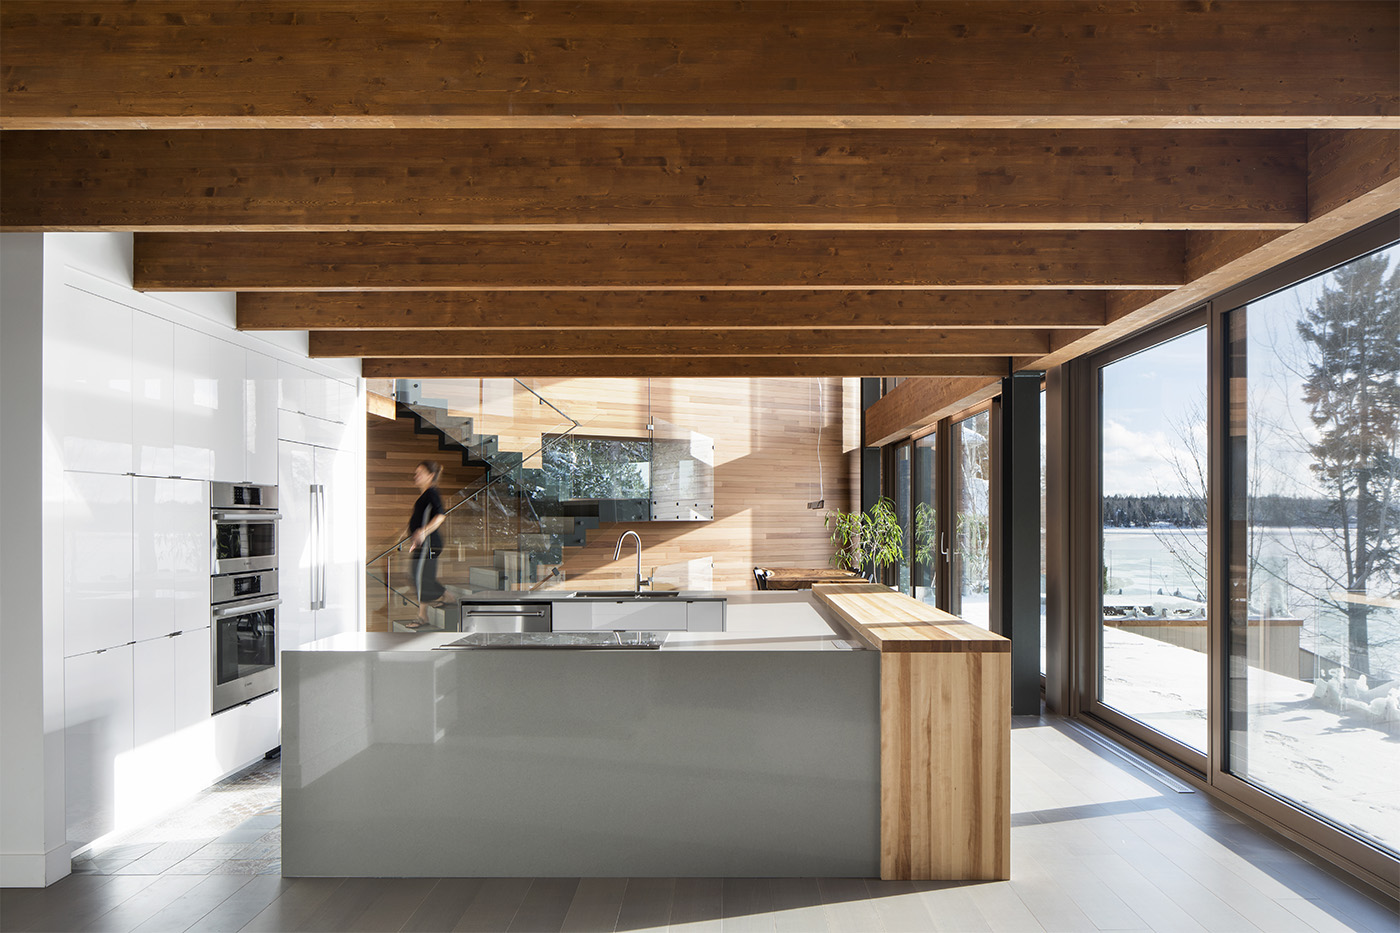 Island kitchen and bay window on nature